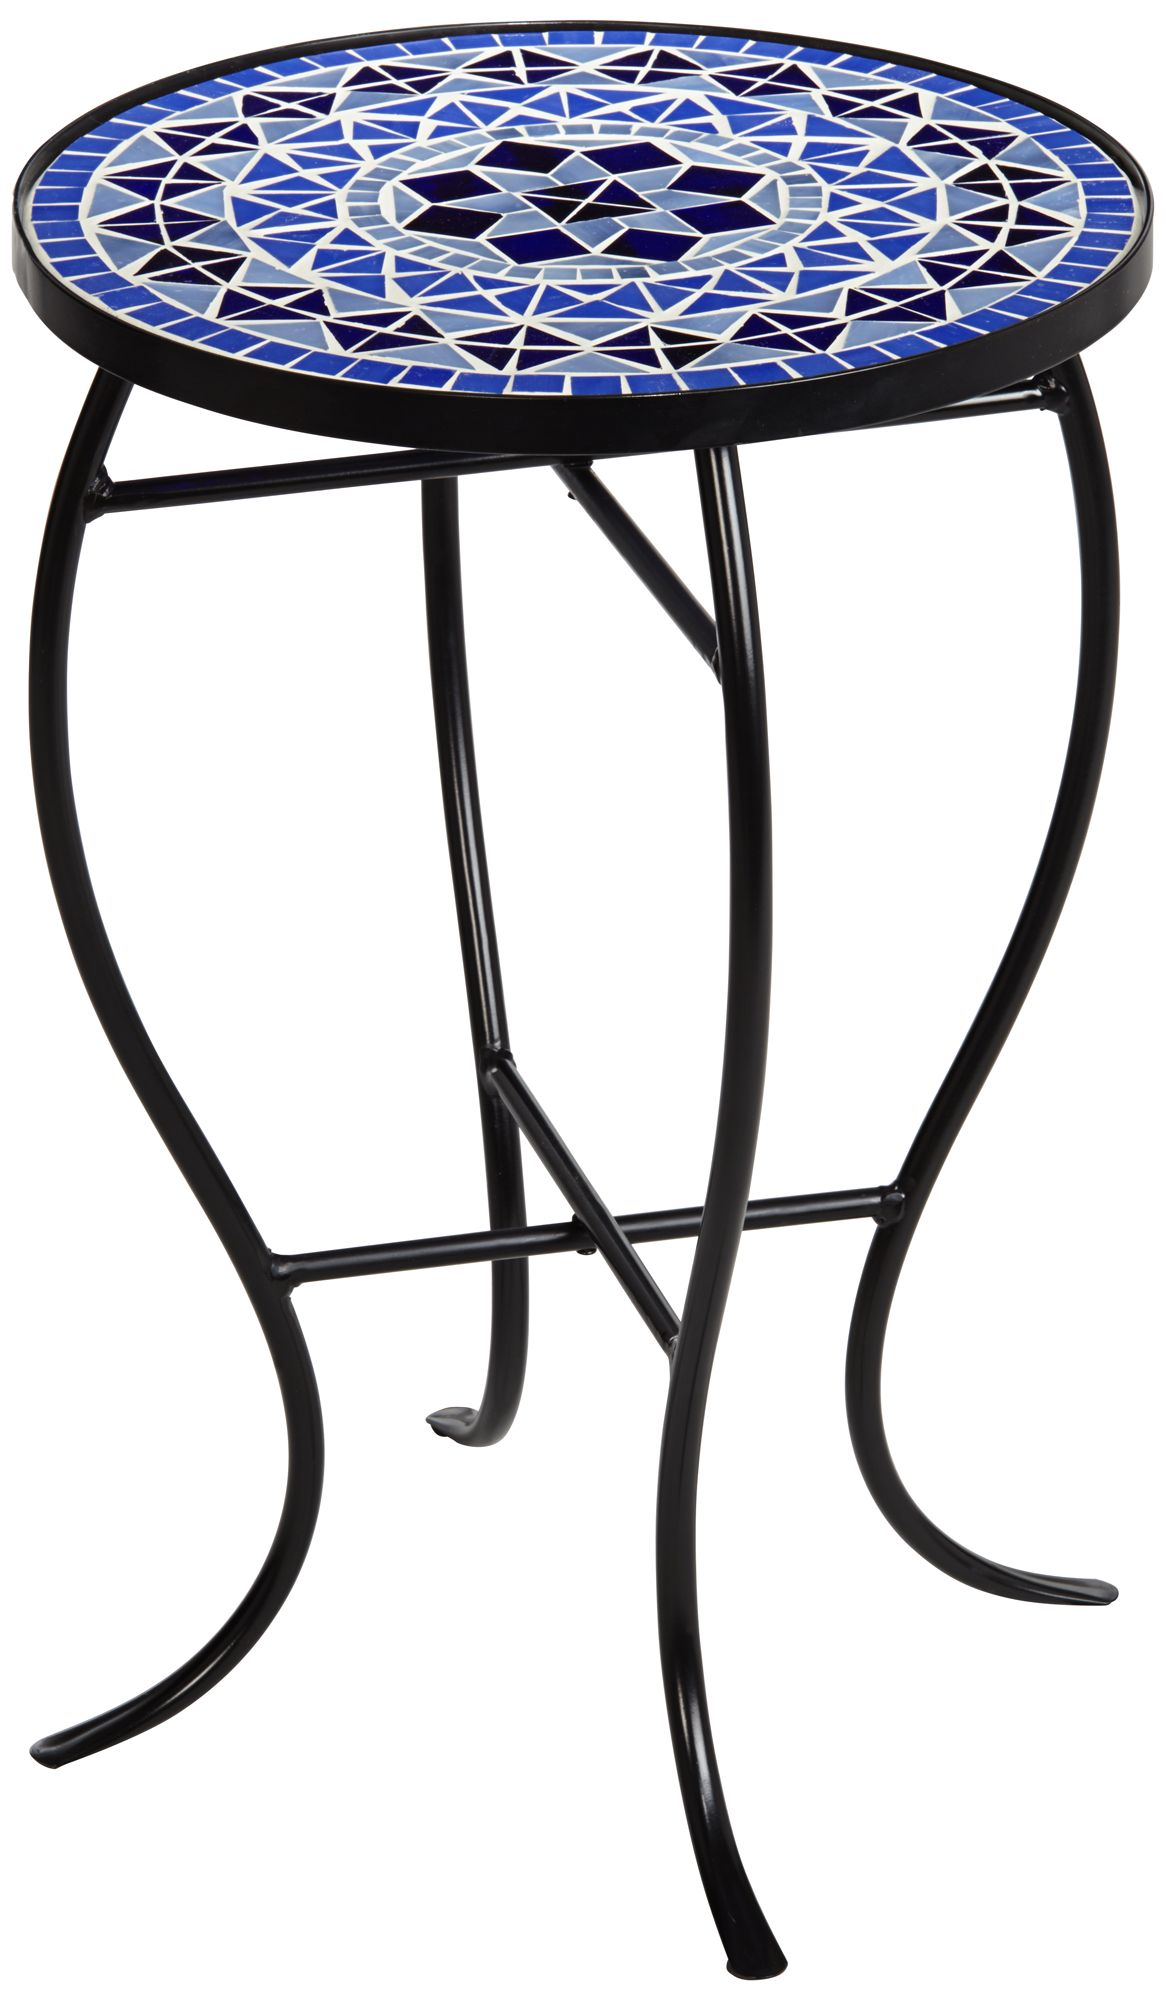 Cobalt Mosaic Black Iron Outdoor Accent Table - #6F095 ... on Outdoor Living Iron Mosaic id=51531